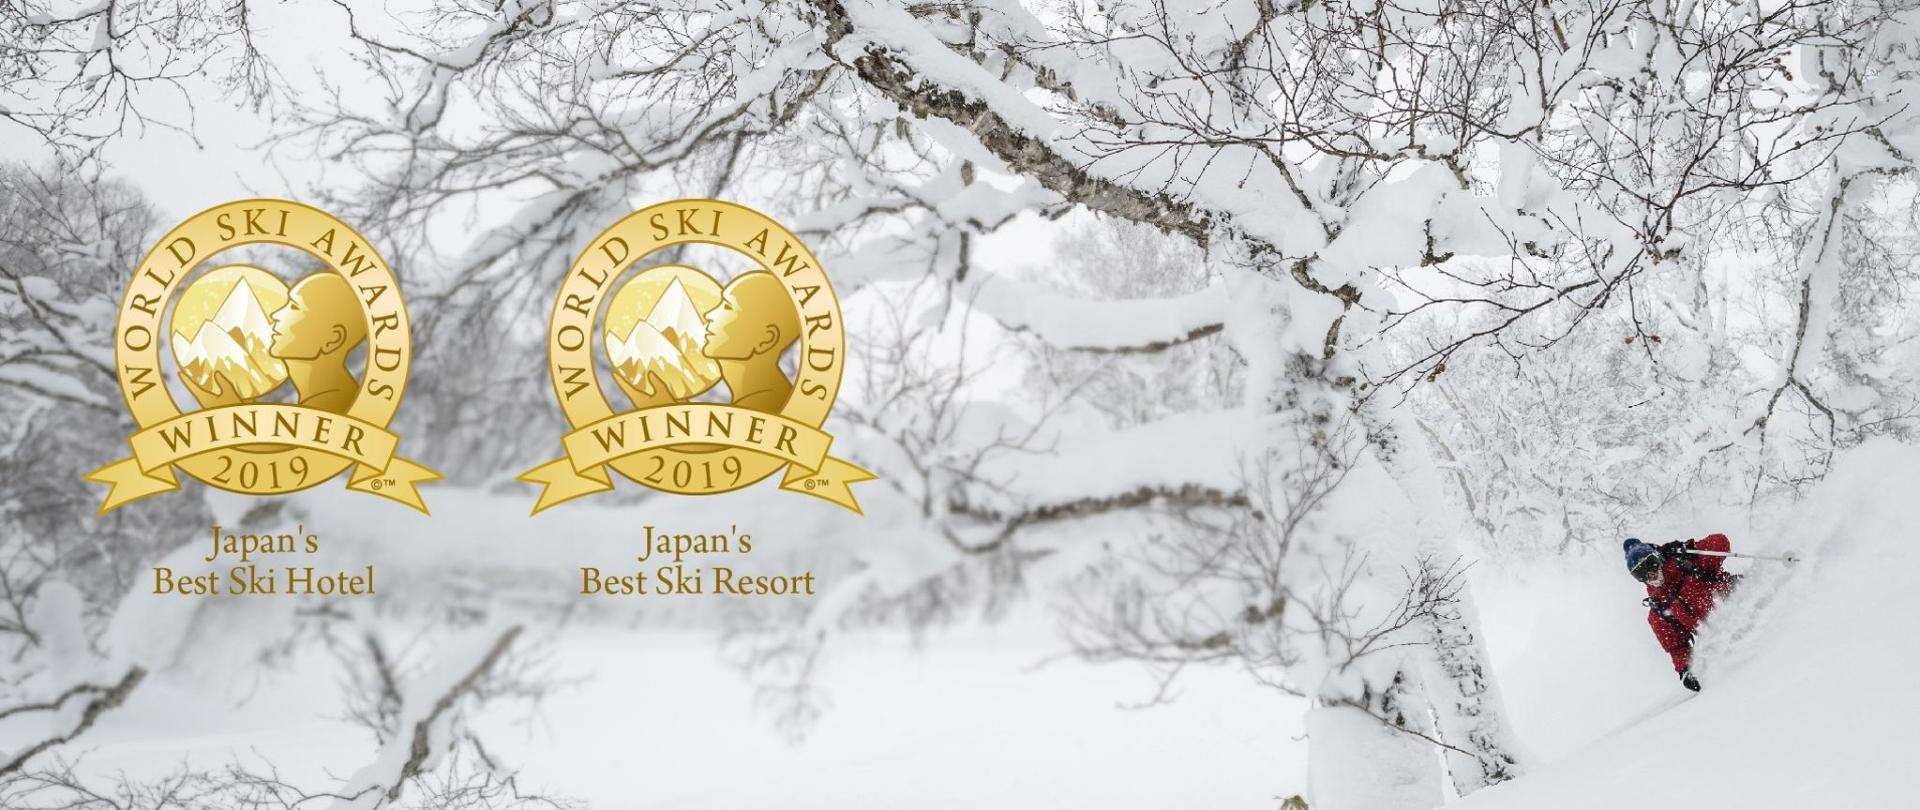 website Cover Photo_skiawards20191121-03.jpg